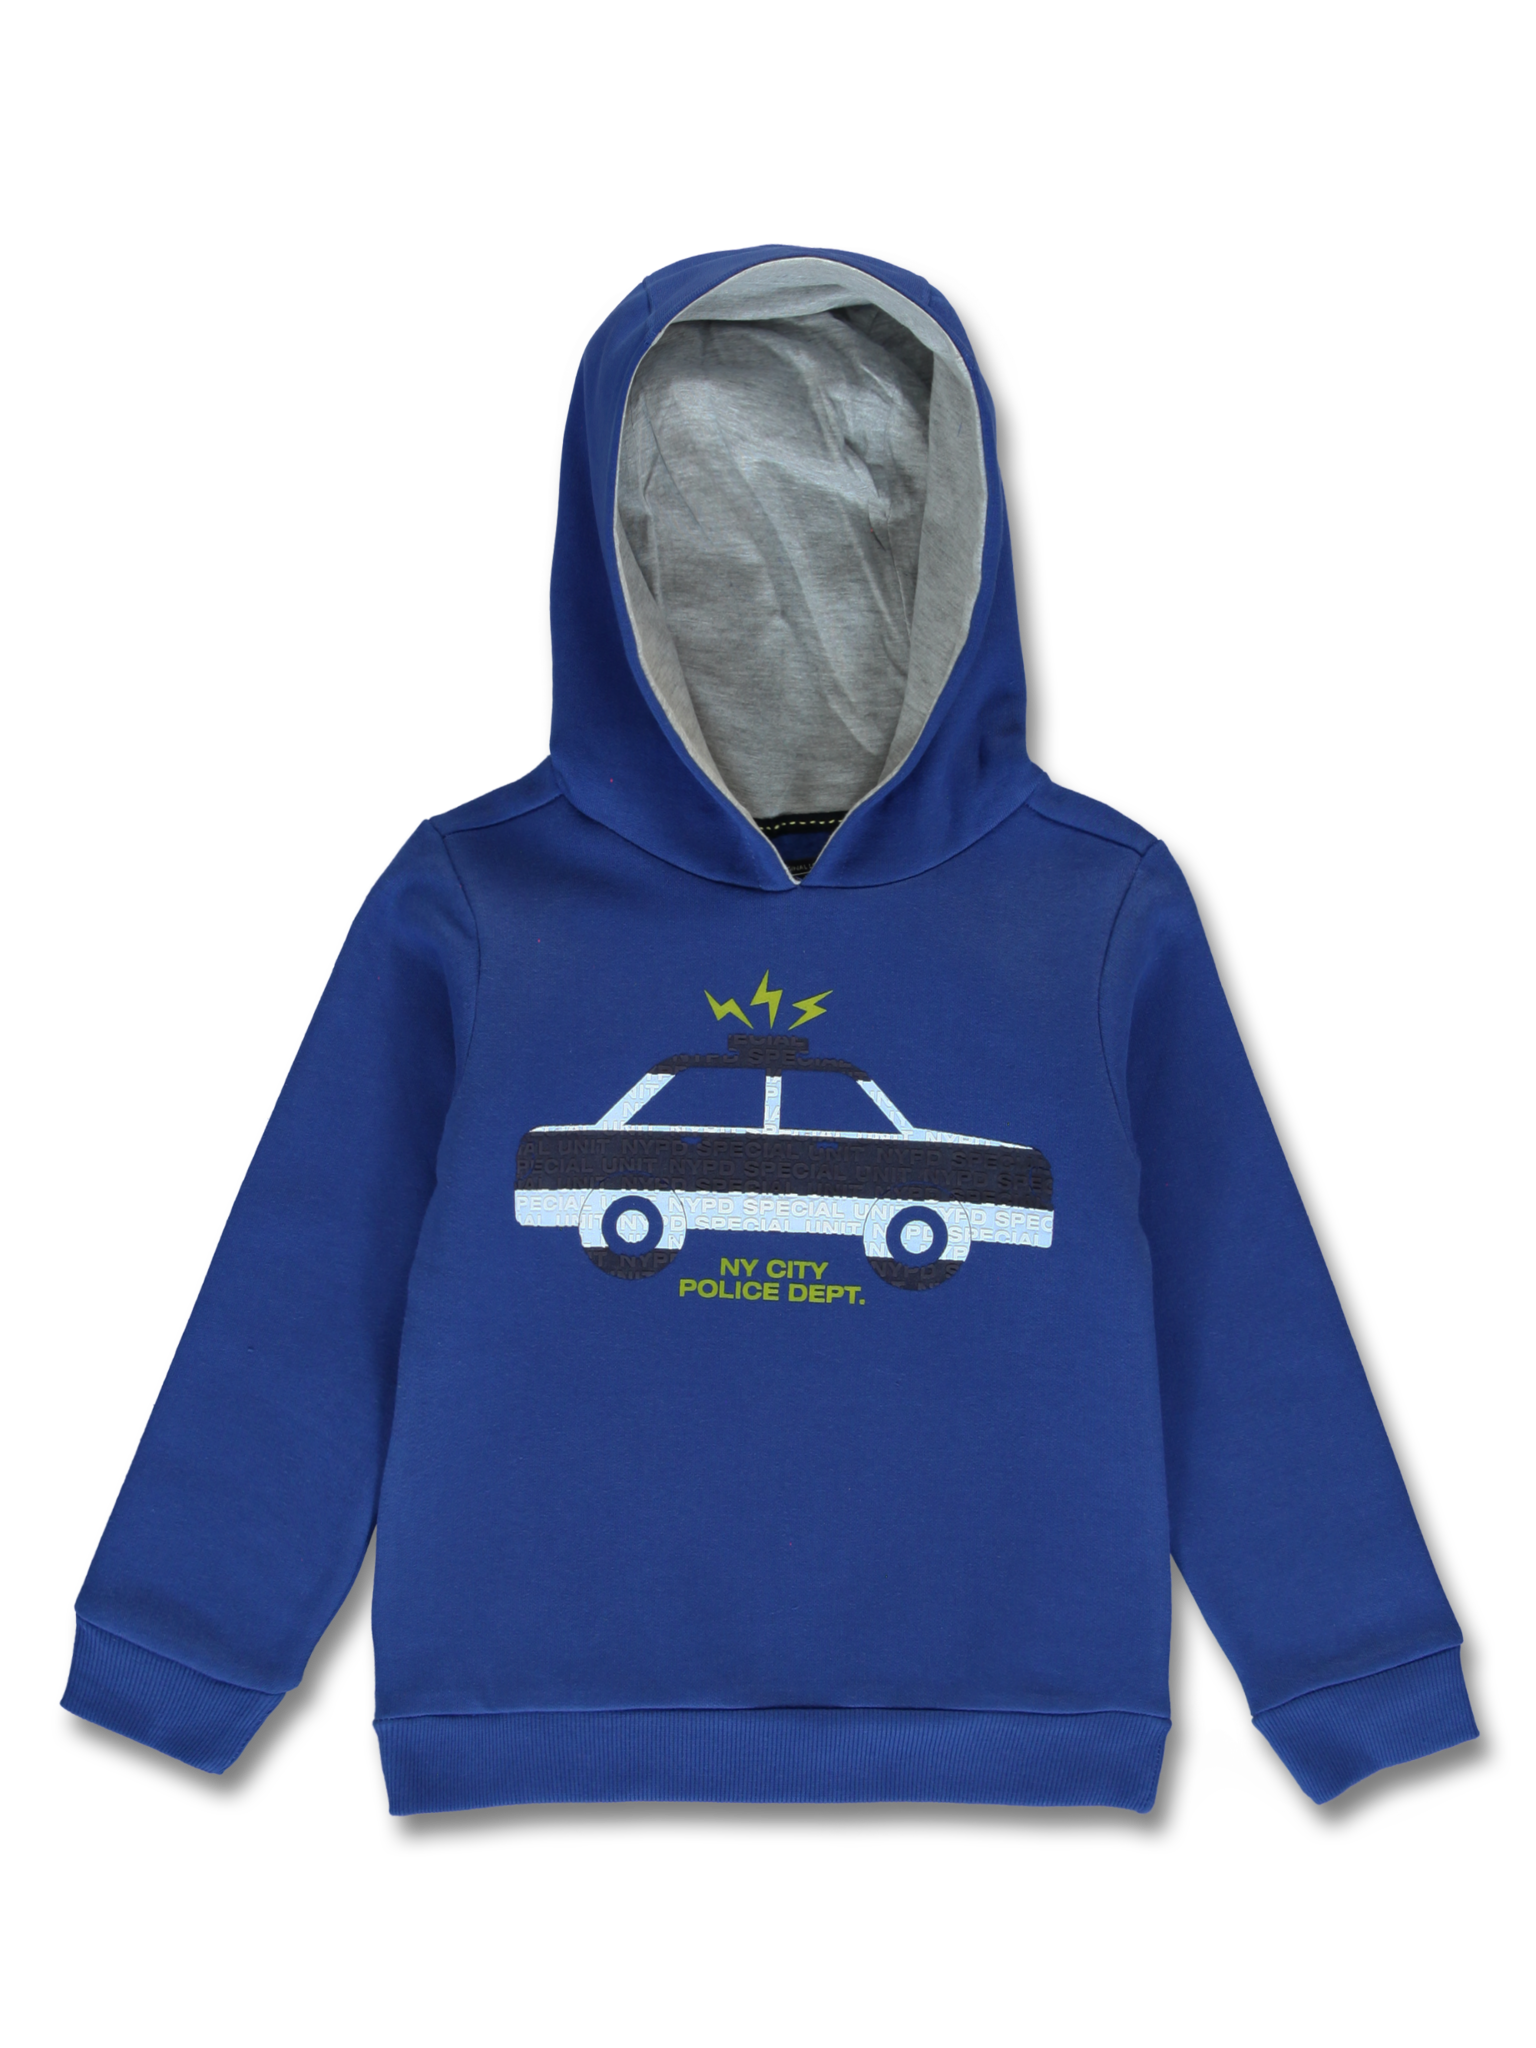 All Brands | Winterproducts Small Boys | Sweatshirt | 12 pcs/box